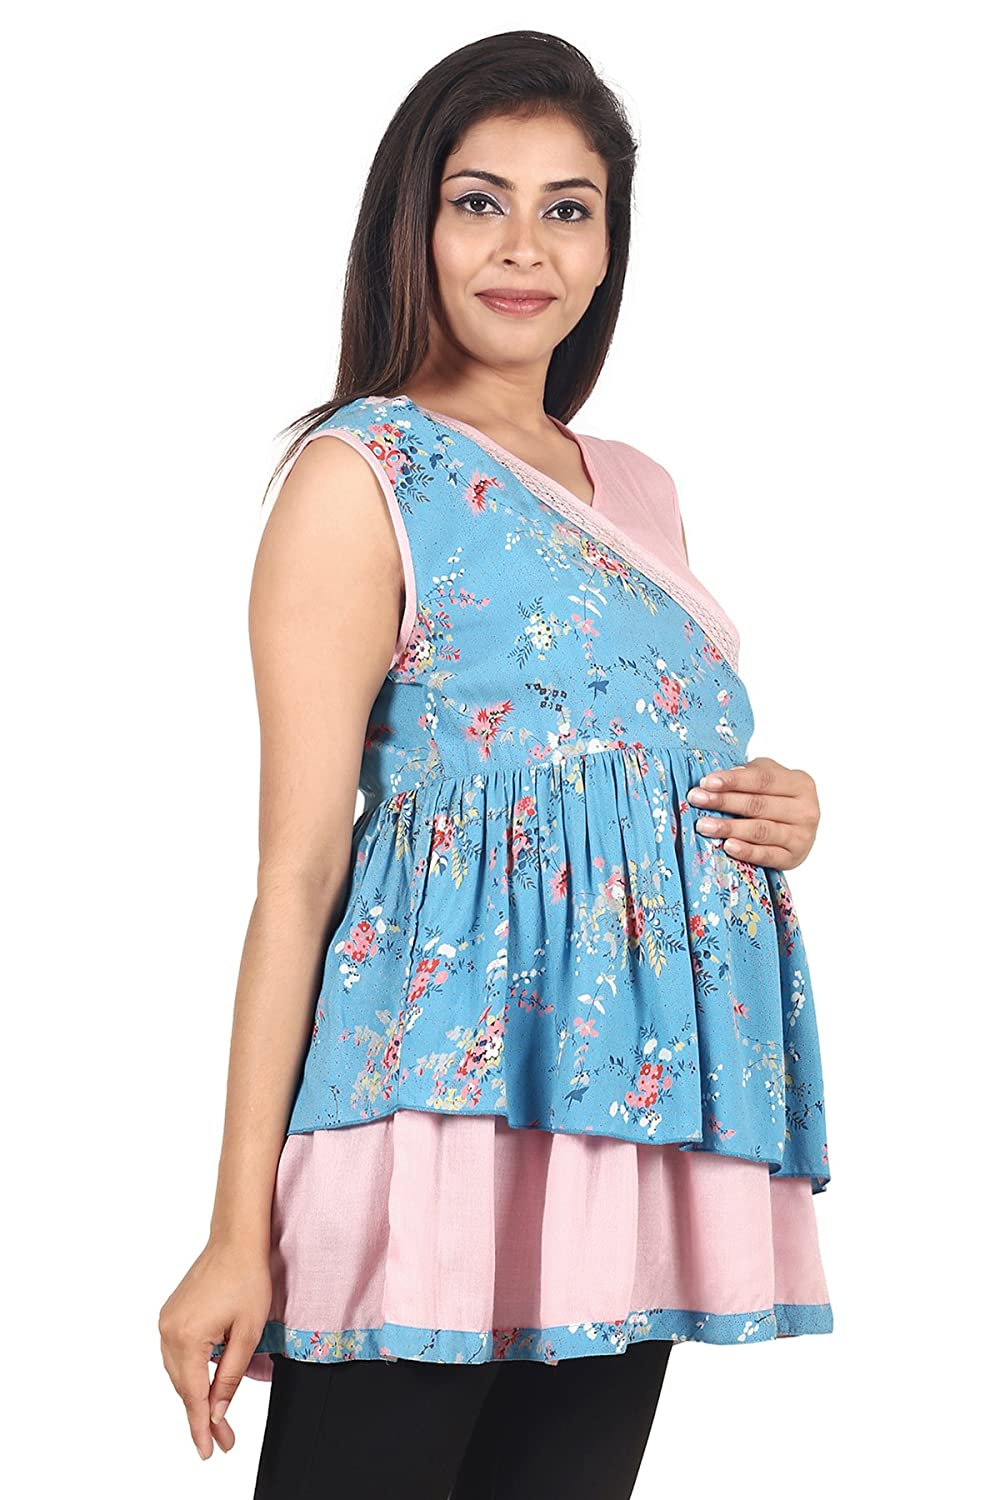 860812ed8abca 9teenAGAIN Women's Moss Crepe Maternity Top(Blue & Pink): Amazon.in:  Clothing & Accessories